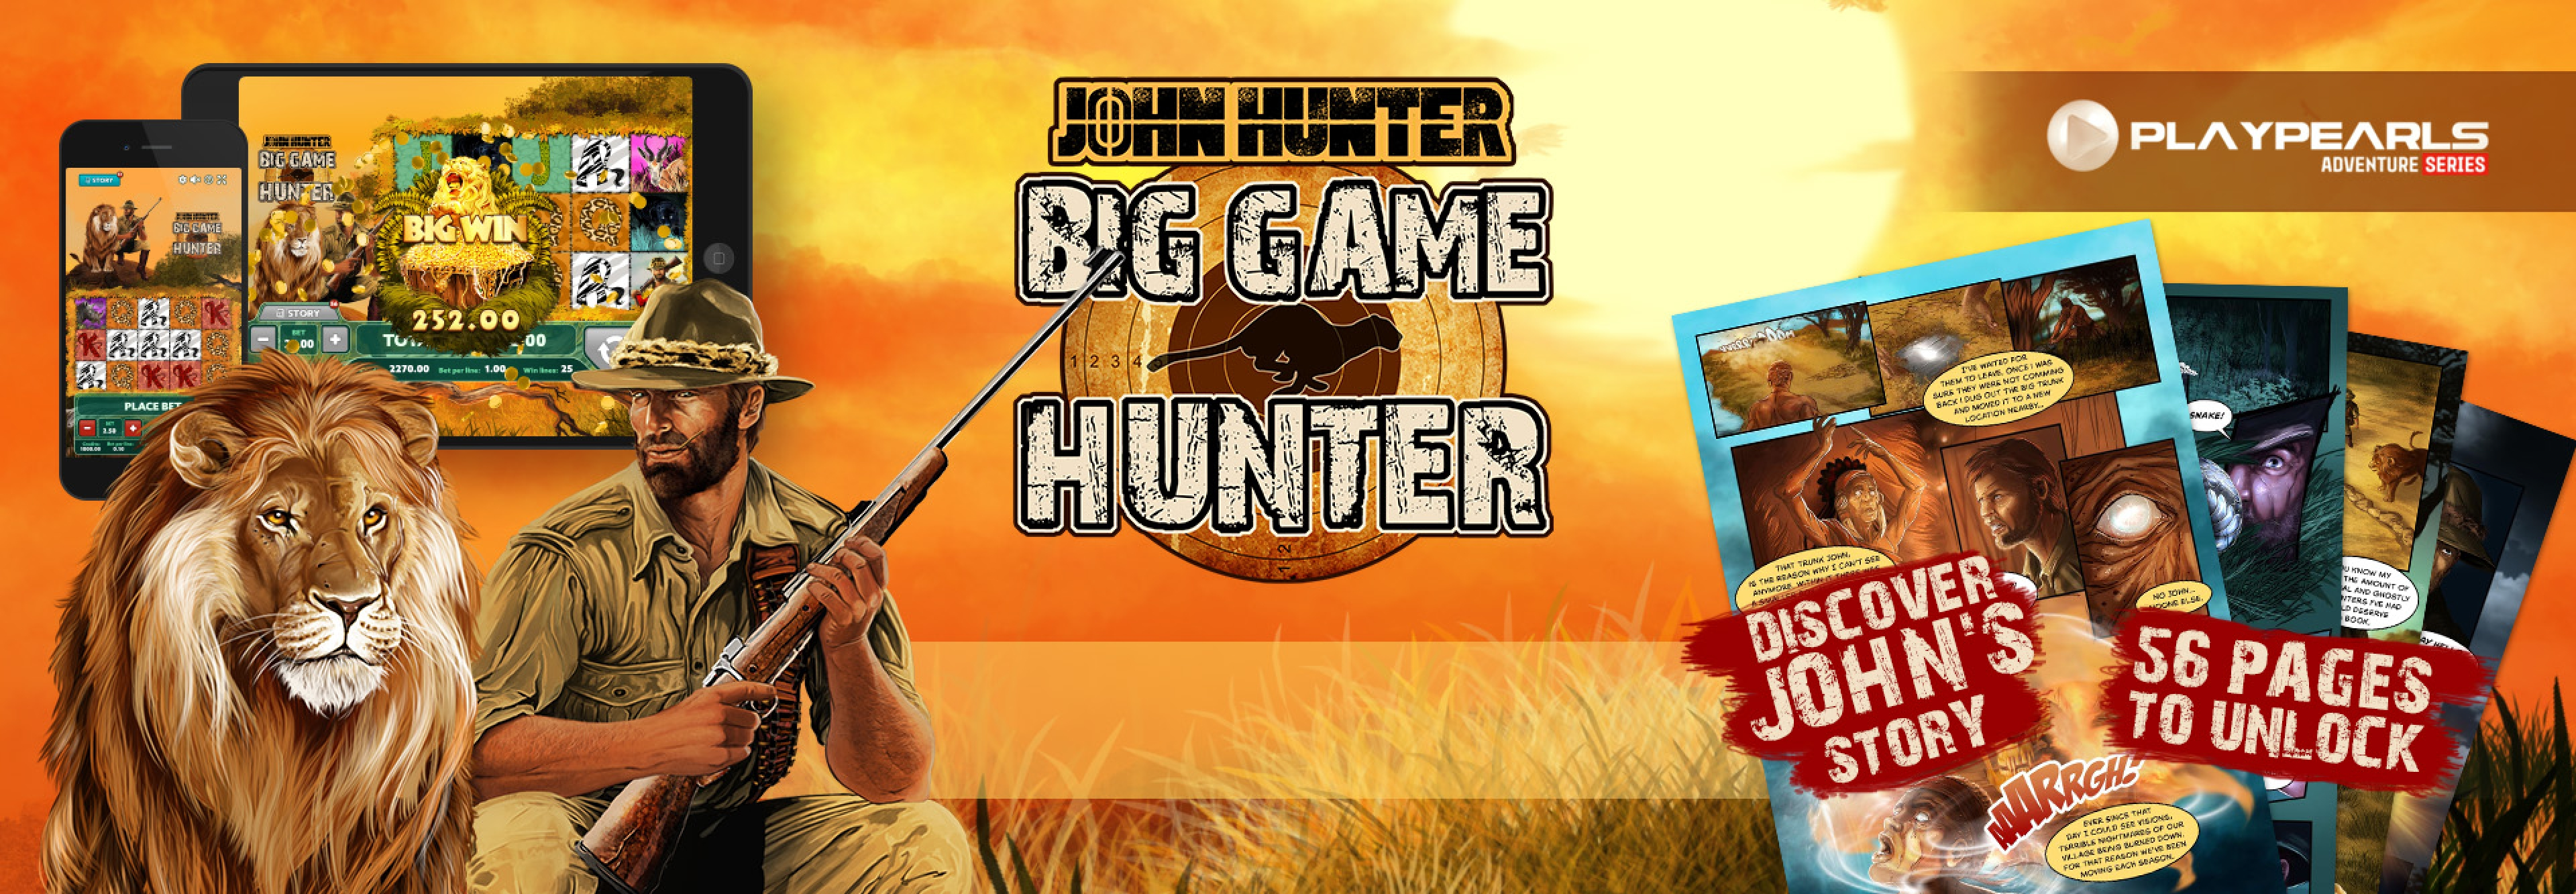 The Big Game Hunter Online Slot Demo Game by PlayPearls